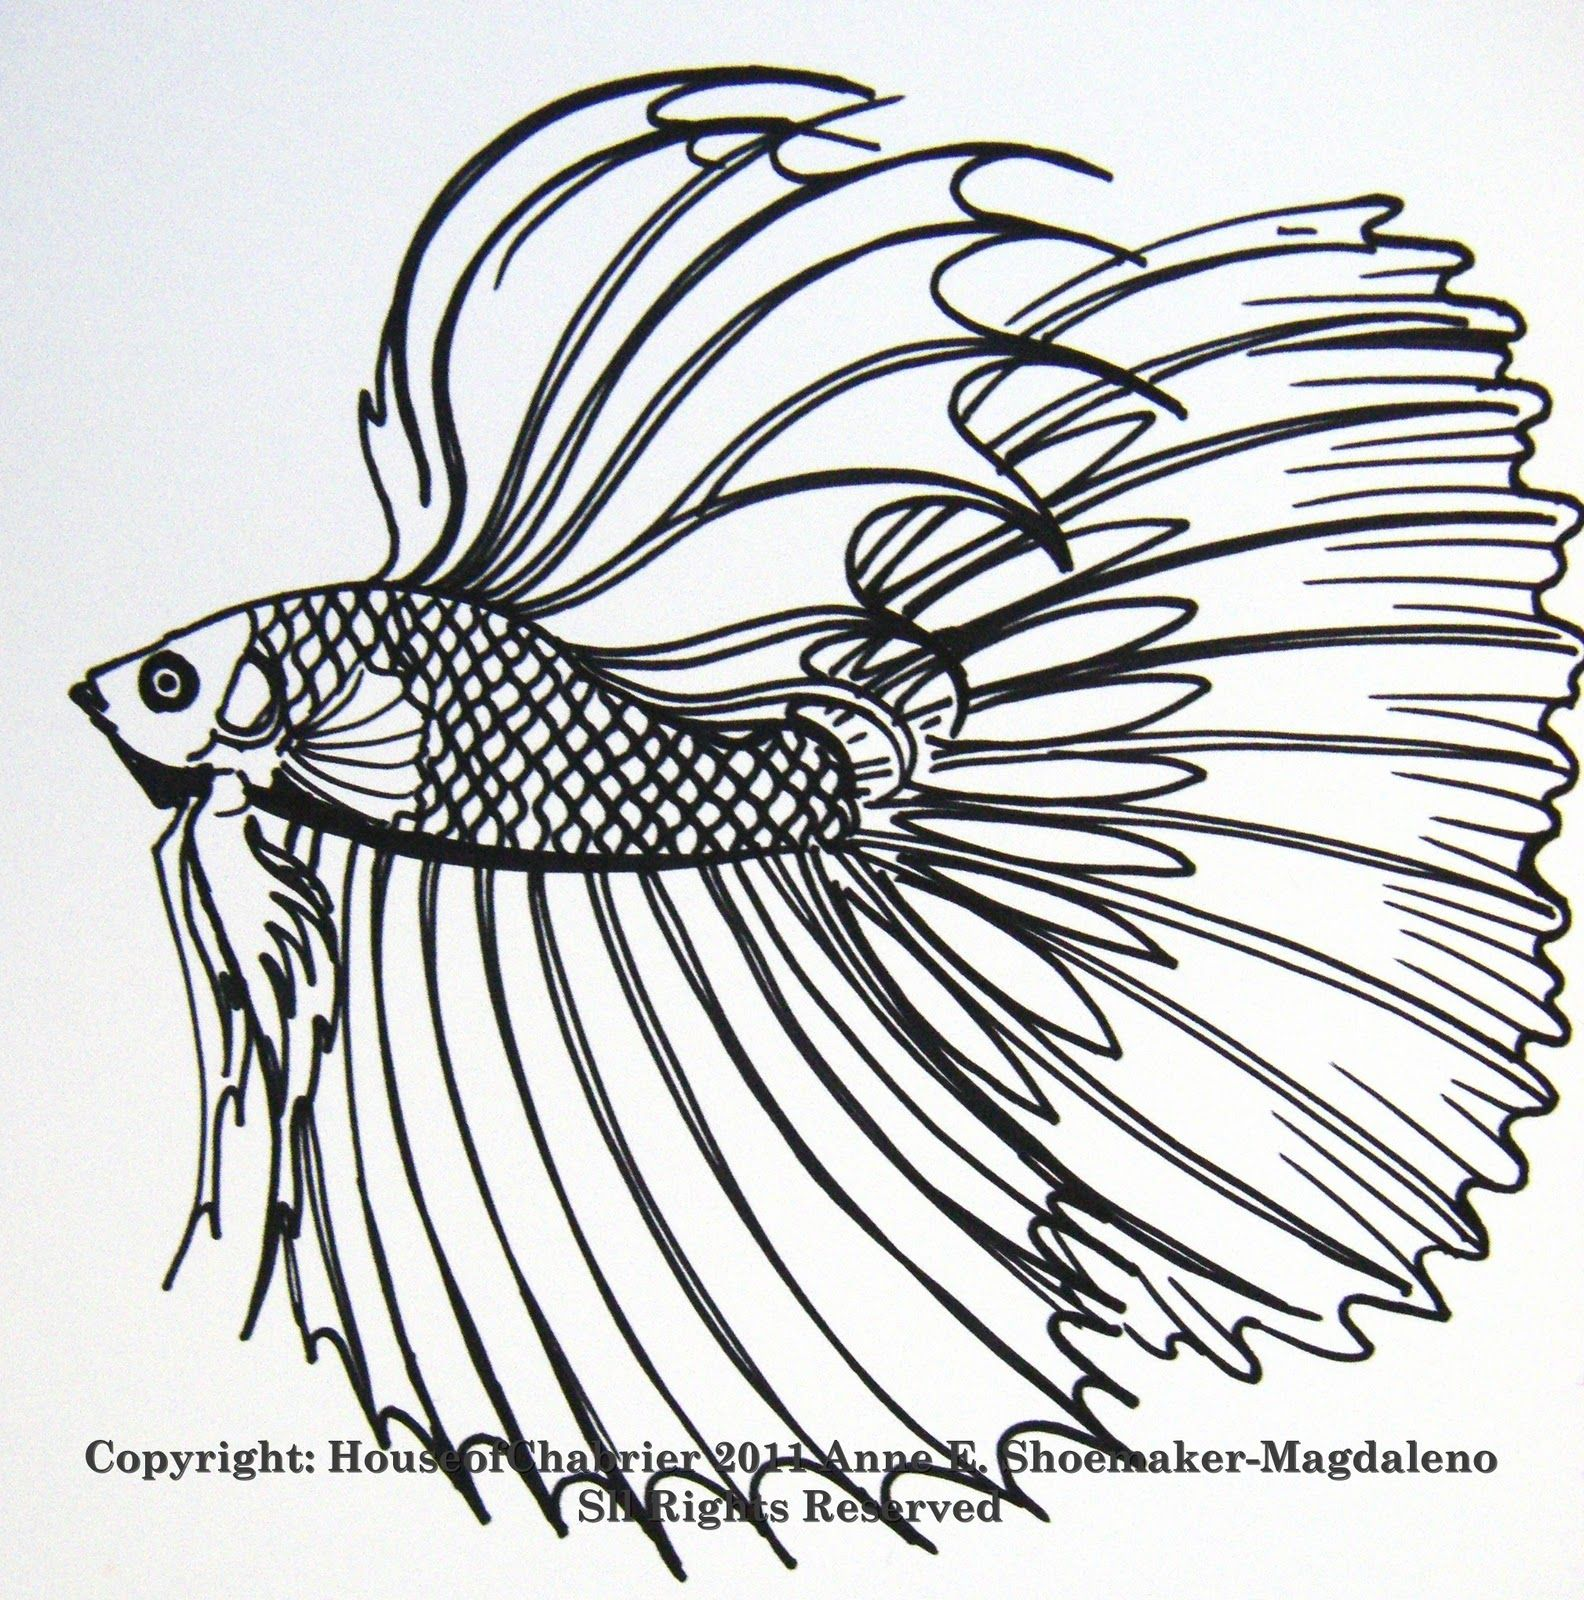 Betta Coloring Pages Here Are Some Of My Line Fish Drawings To